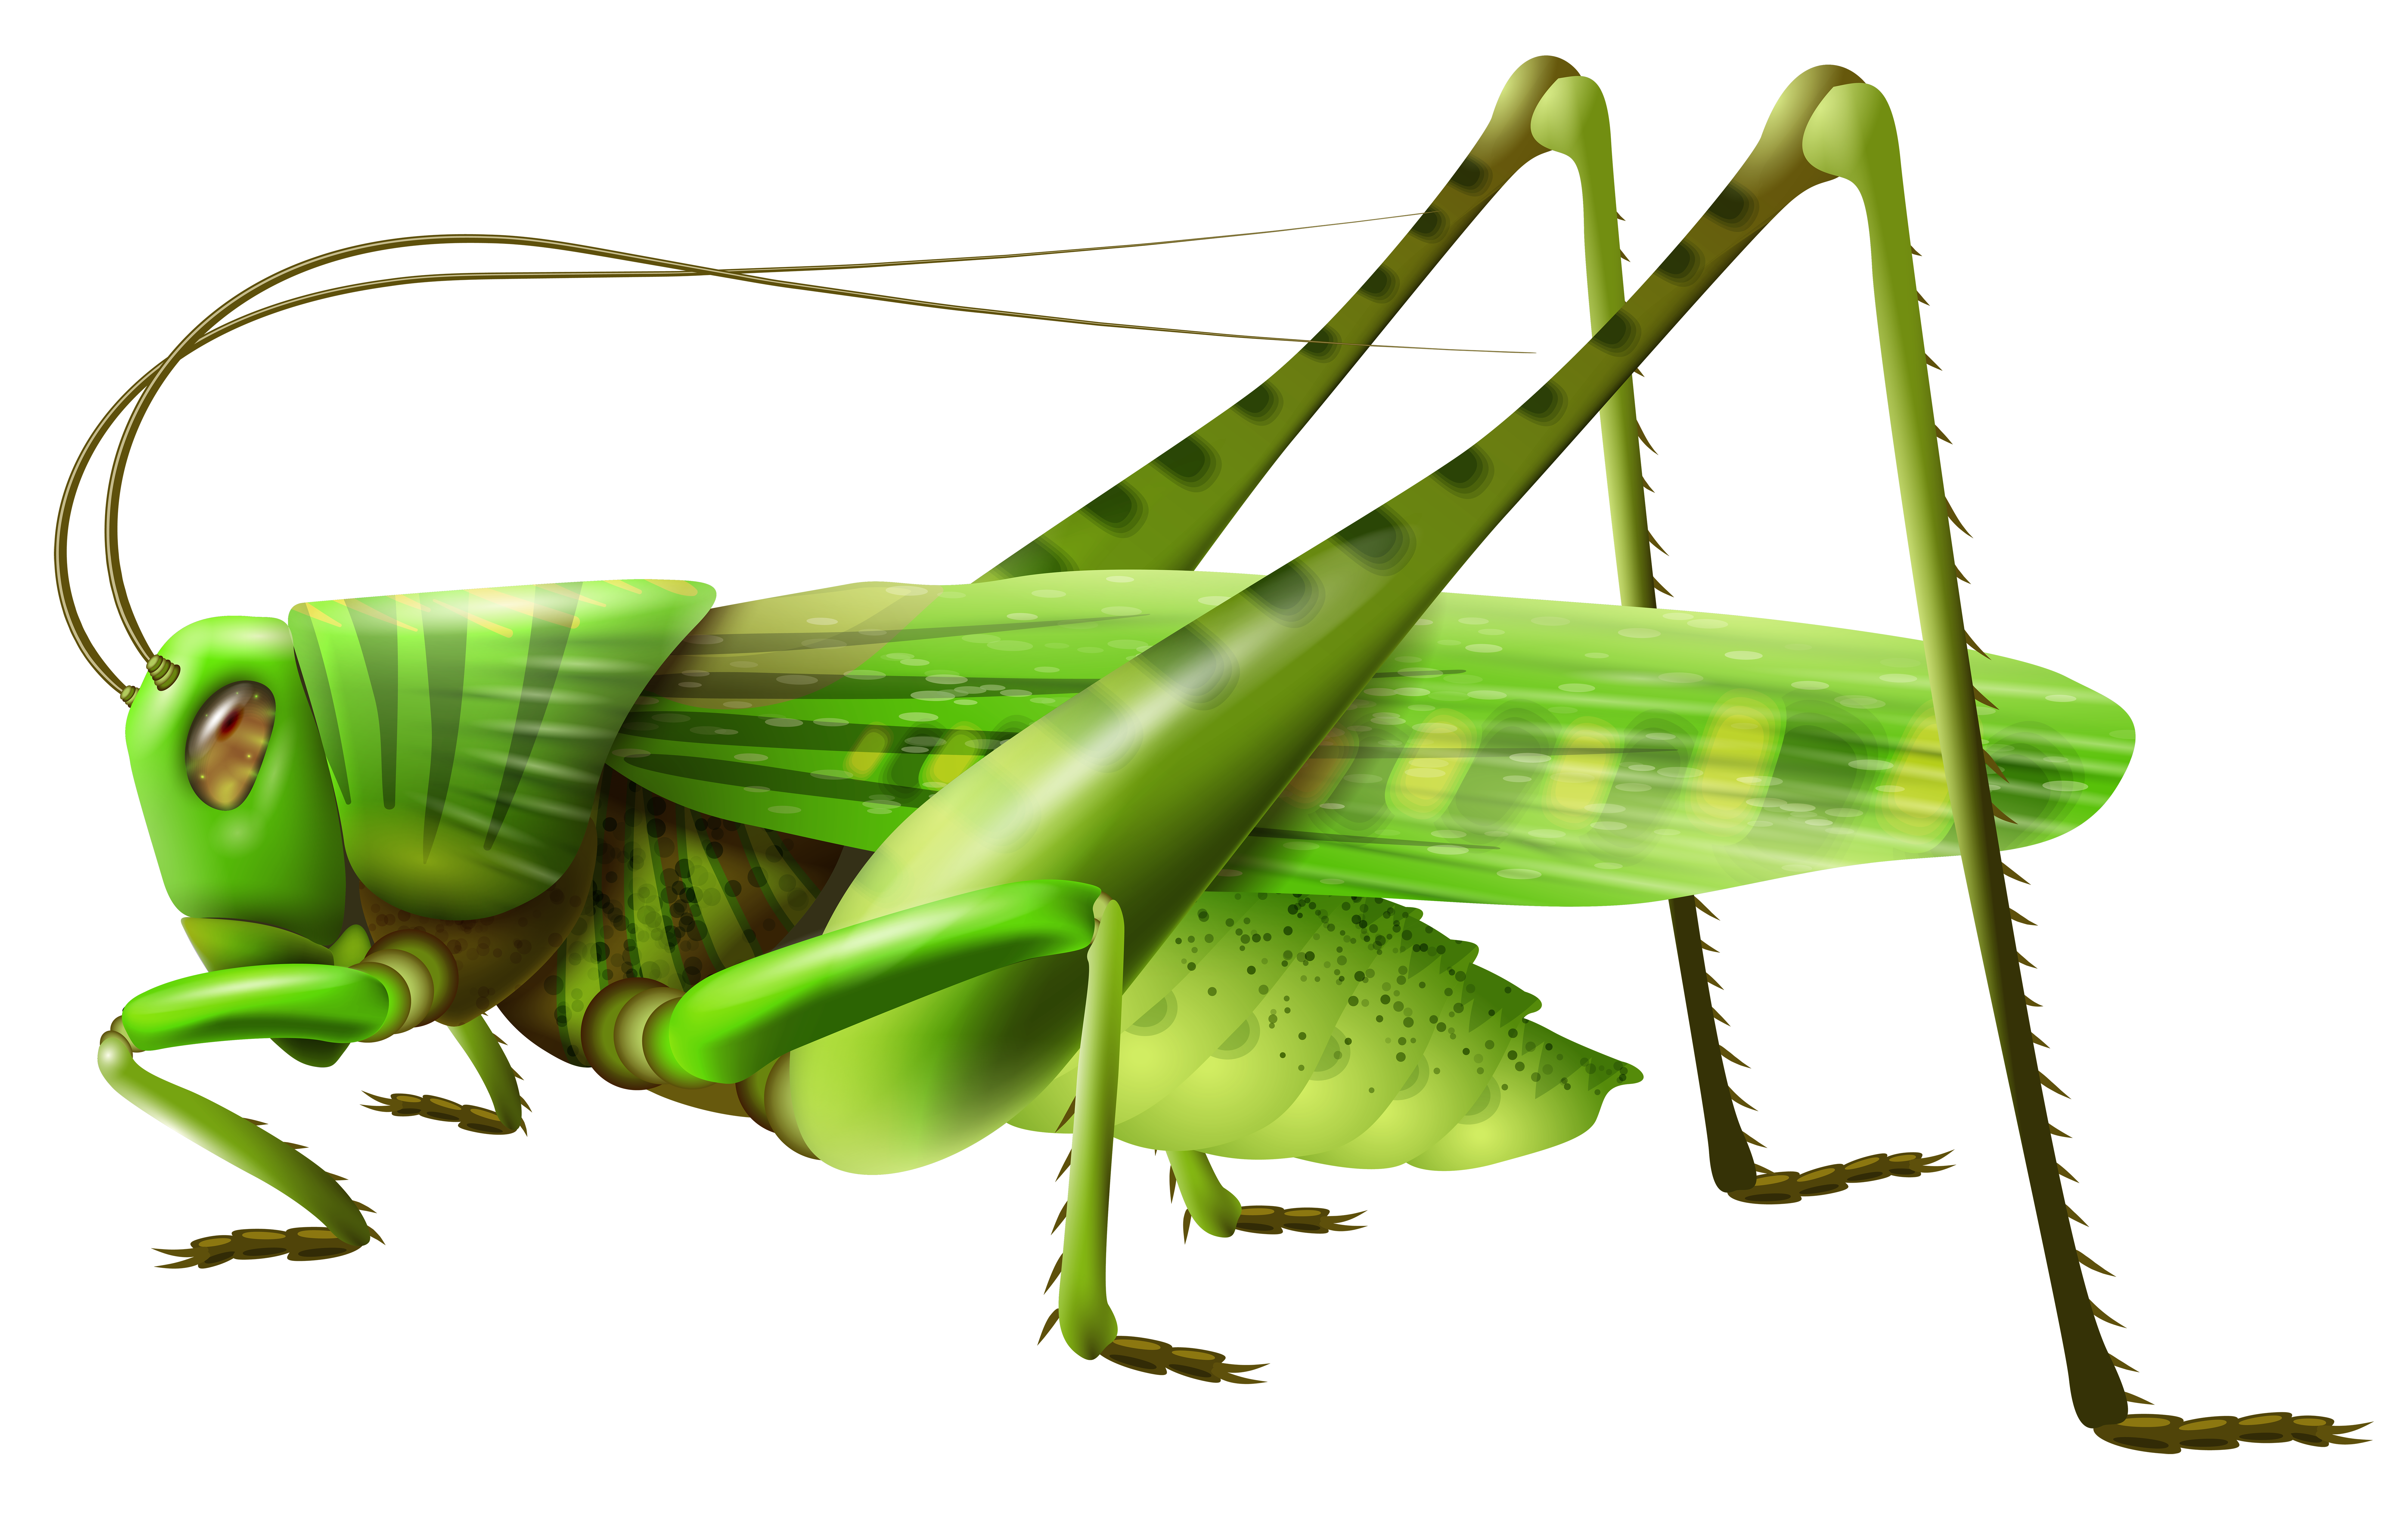 Grasshopper vector mantis. Png images free download